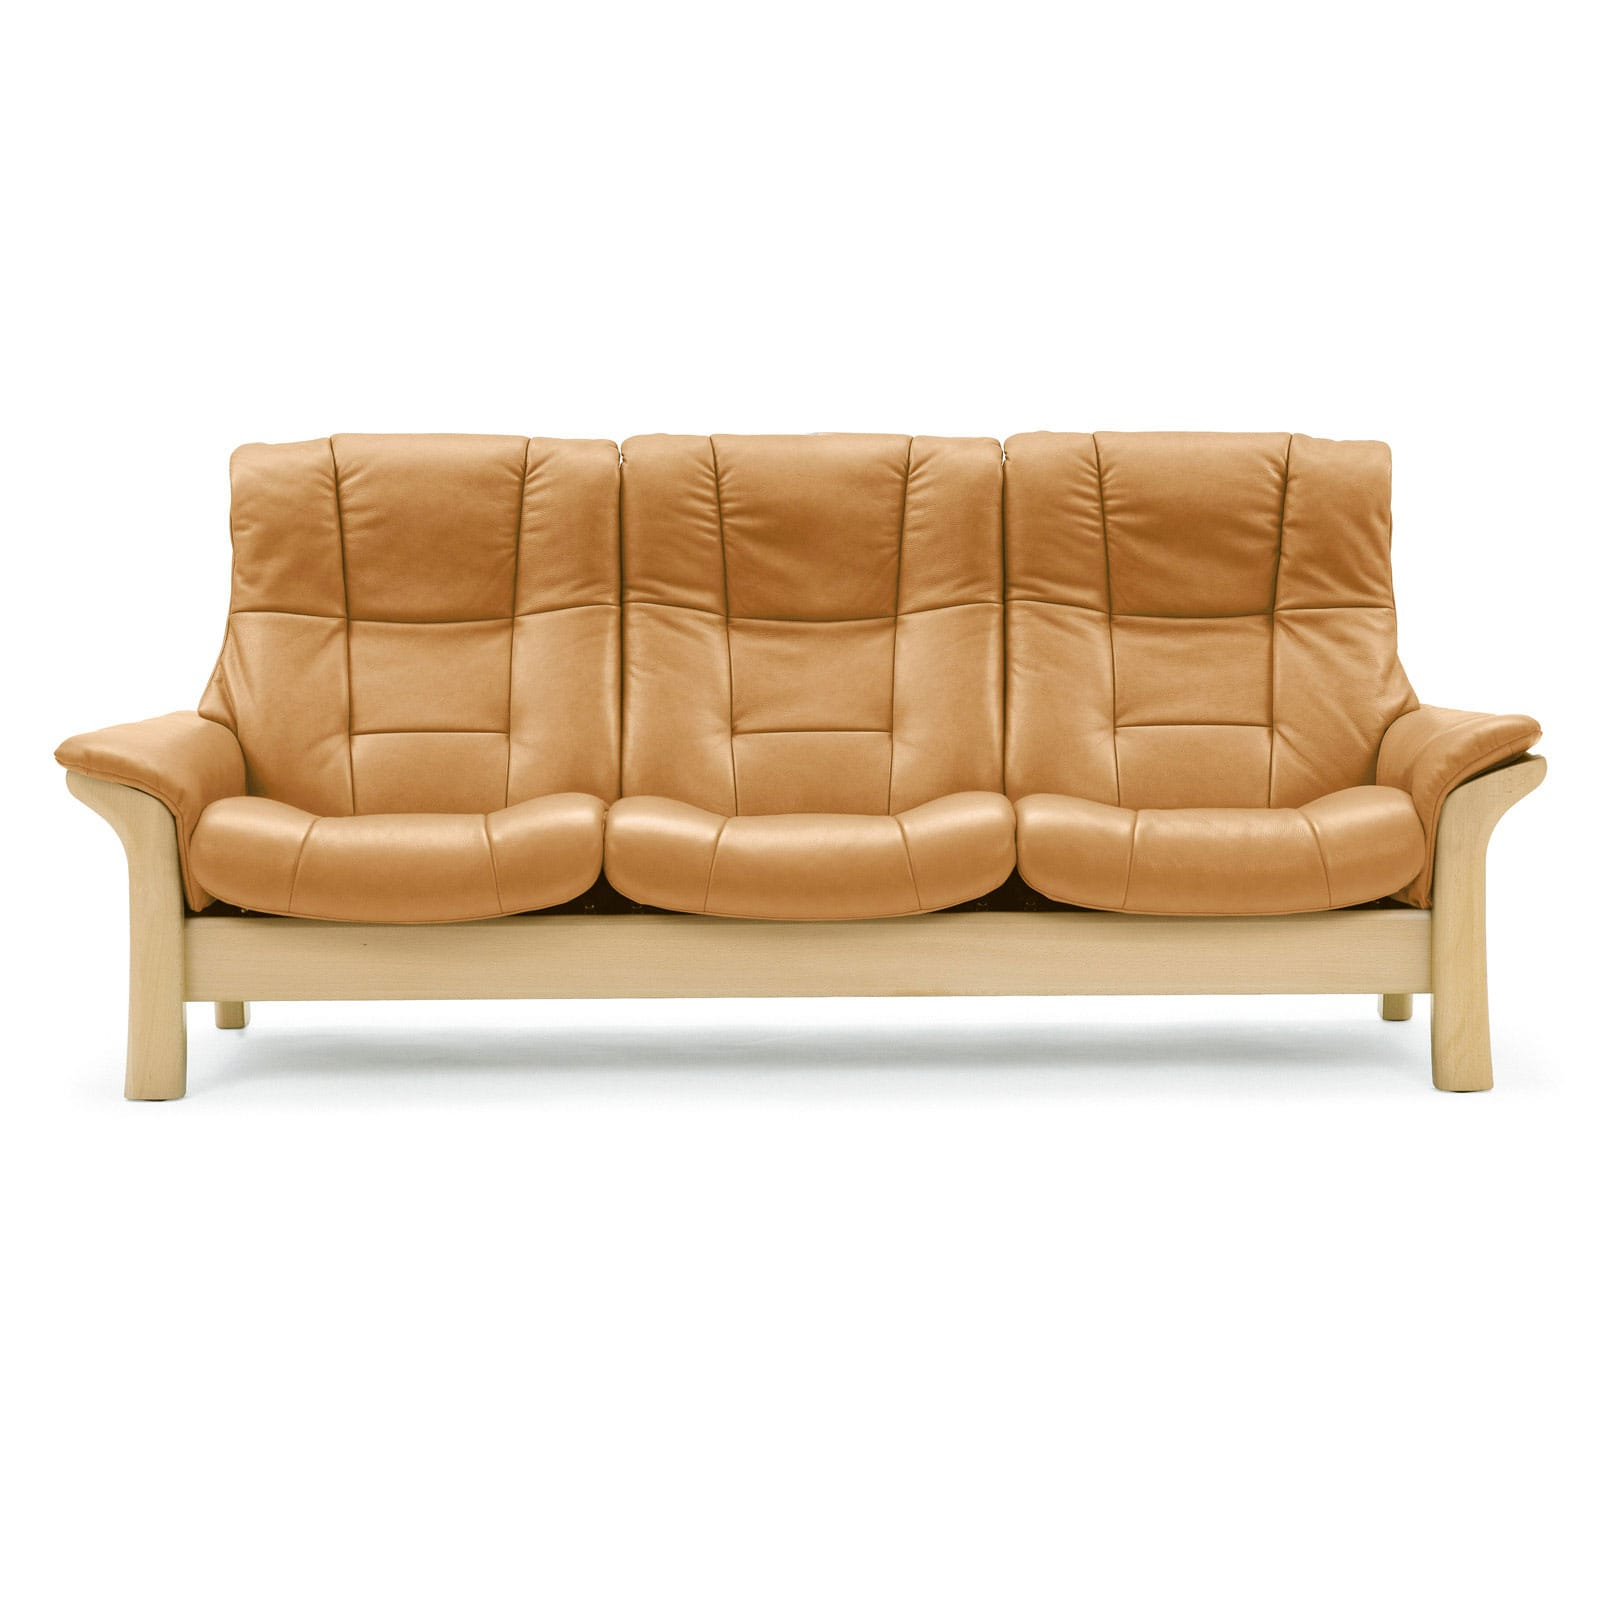 Stressless sofa 3 sitzer buckingham l hoch tan natur for Sofa 3 sitzer